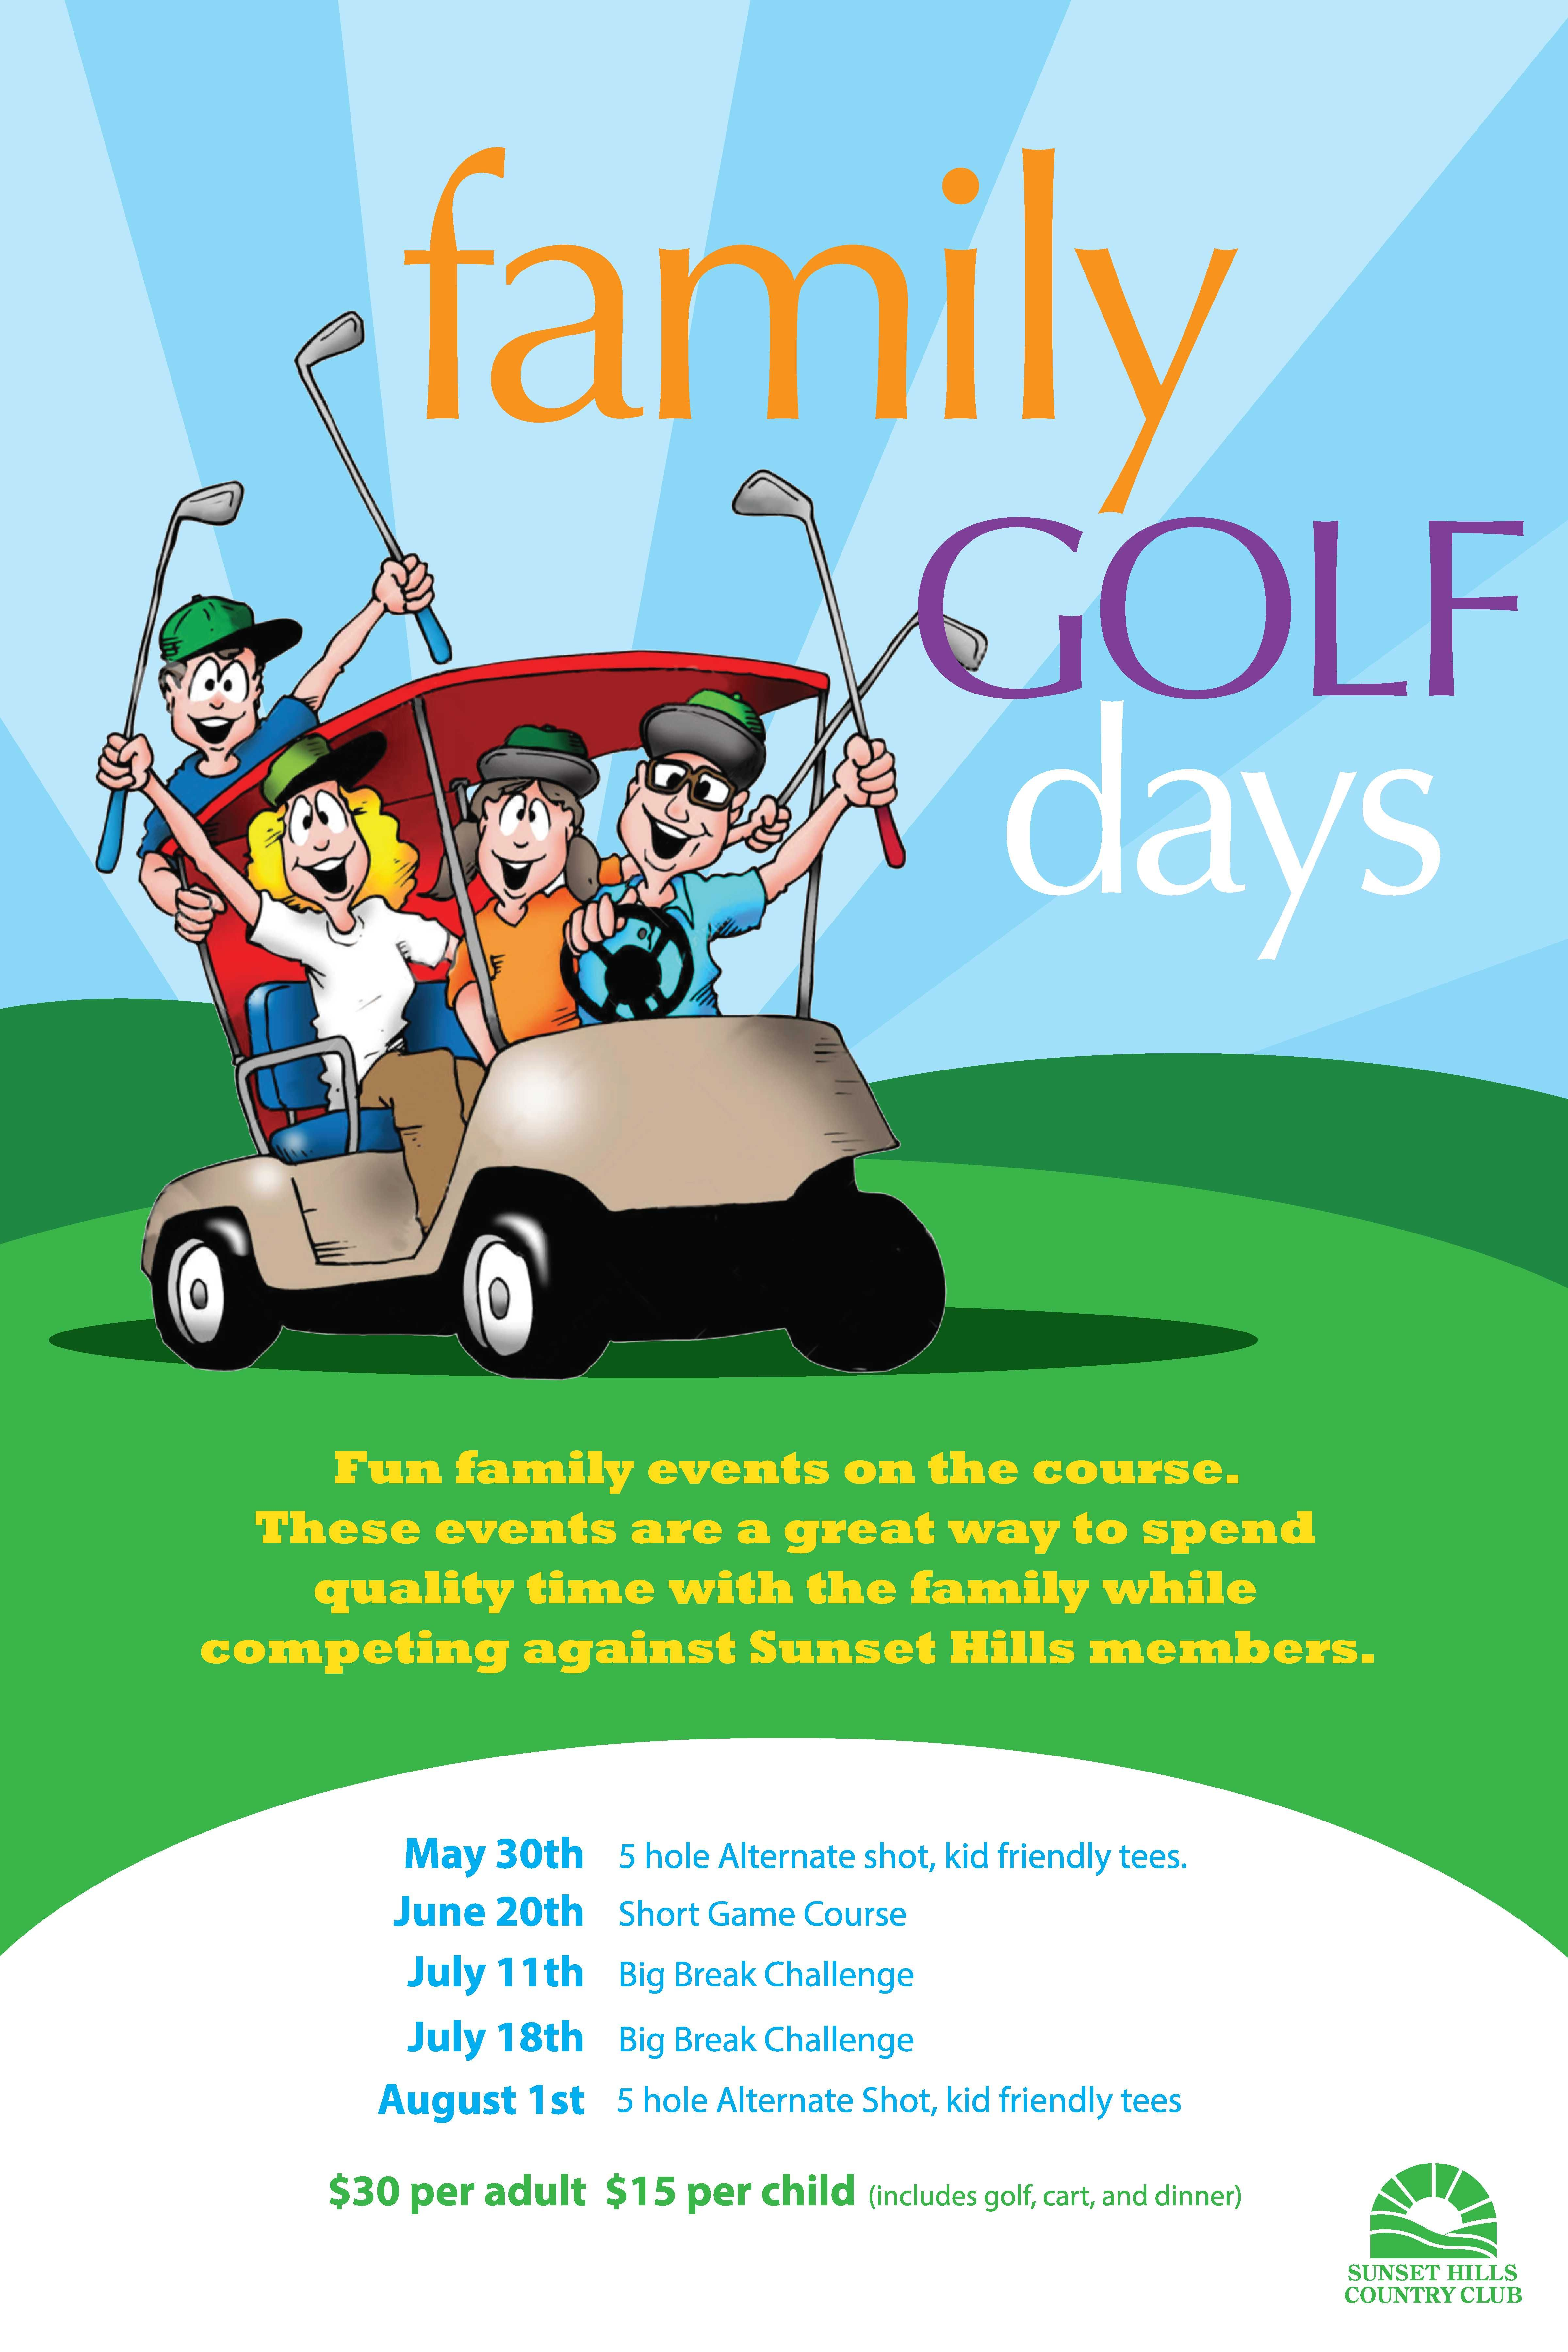 Family Golf Days | Golf Events | Pinterest | Golf events, Golf day on fun kitchen ideas, fun camping ideas, fun pool ideas, fun family ideas, fun furniture ideas, fun exercise ideas, fun beach ideas, fun games ideas, fun gardening ideas, fun lake ideas, fun photography ideas, fun safety ideas, fun art ideas, fun bowling ideas, fun cooking ideas, fun cheerleading ideas, fun restaurant ideas, fun home ideas, fun business ideas, fun marketing ideas,